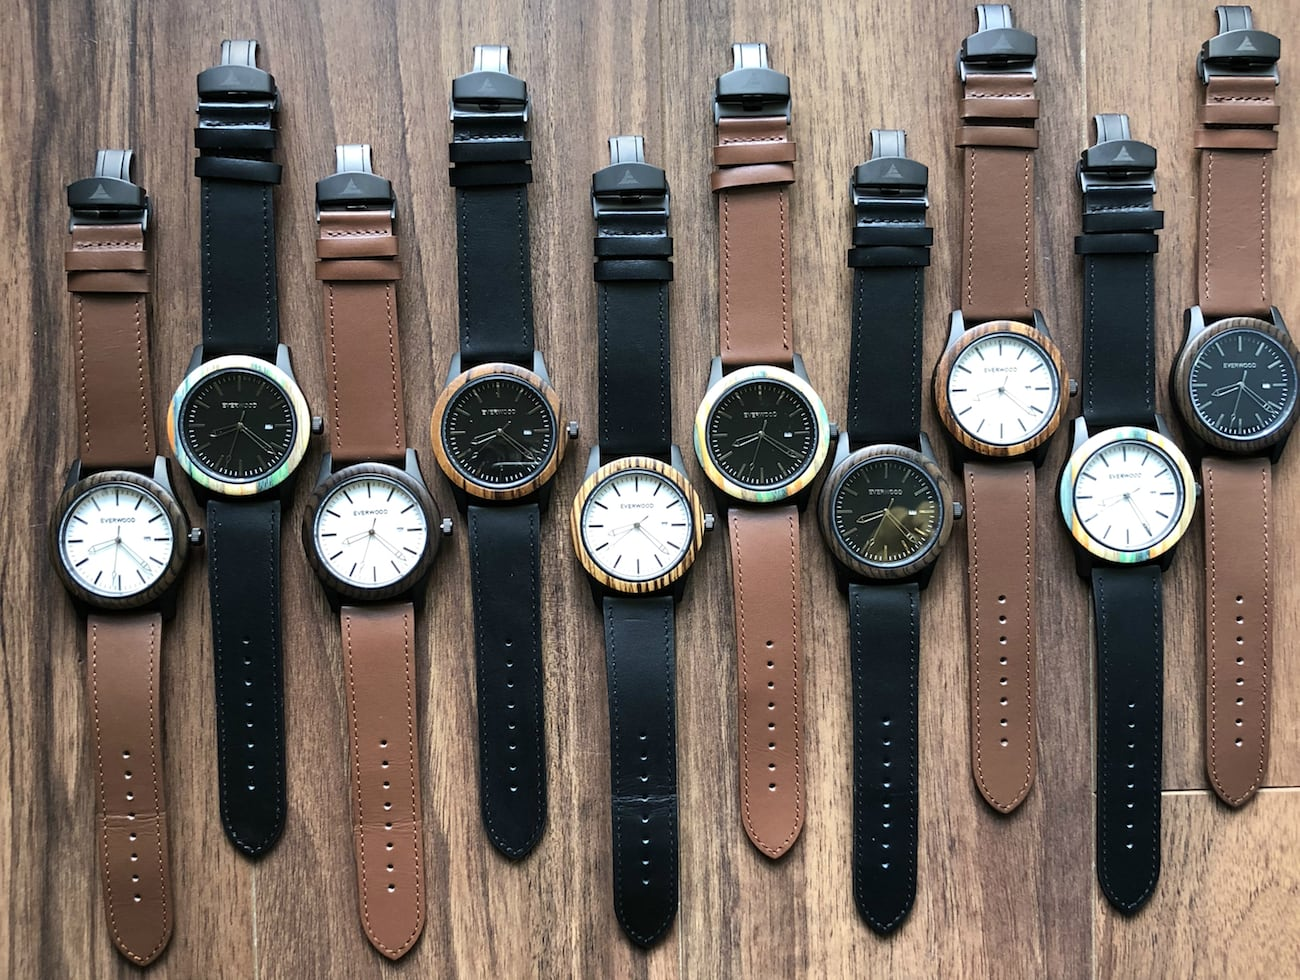 Inverness Rugged Wood and Steel Watch